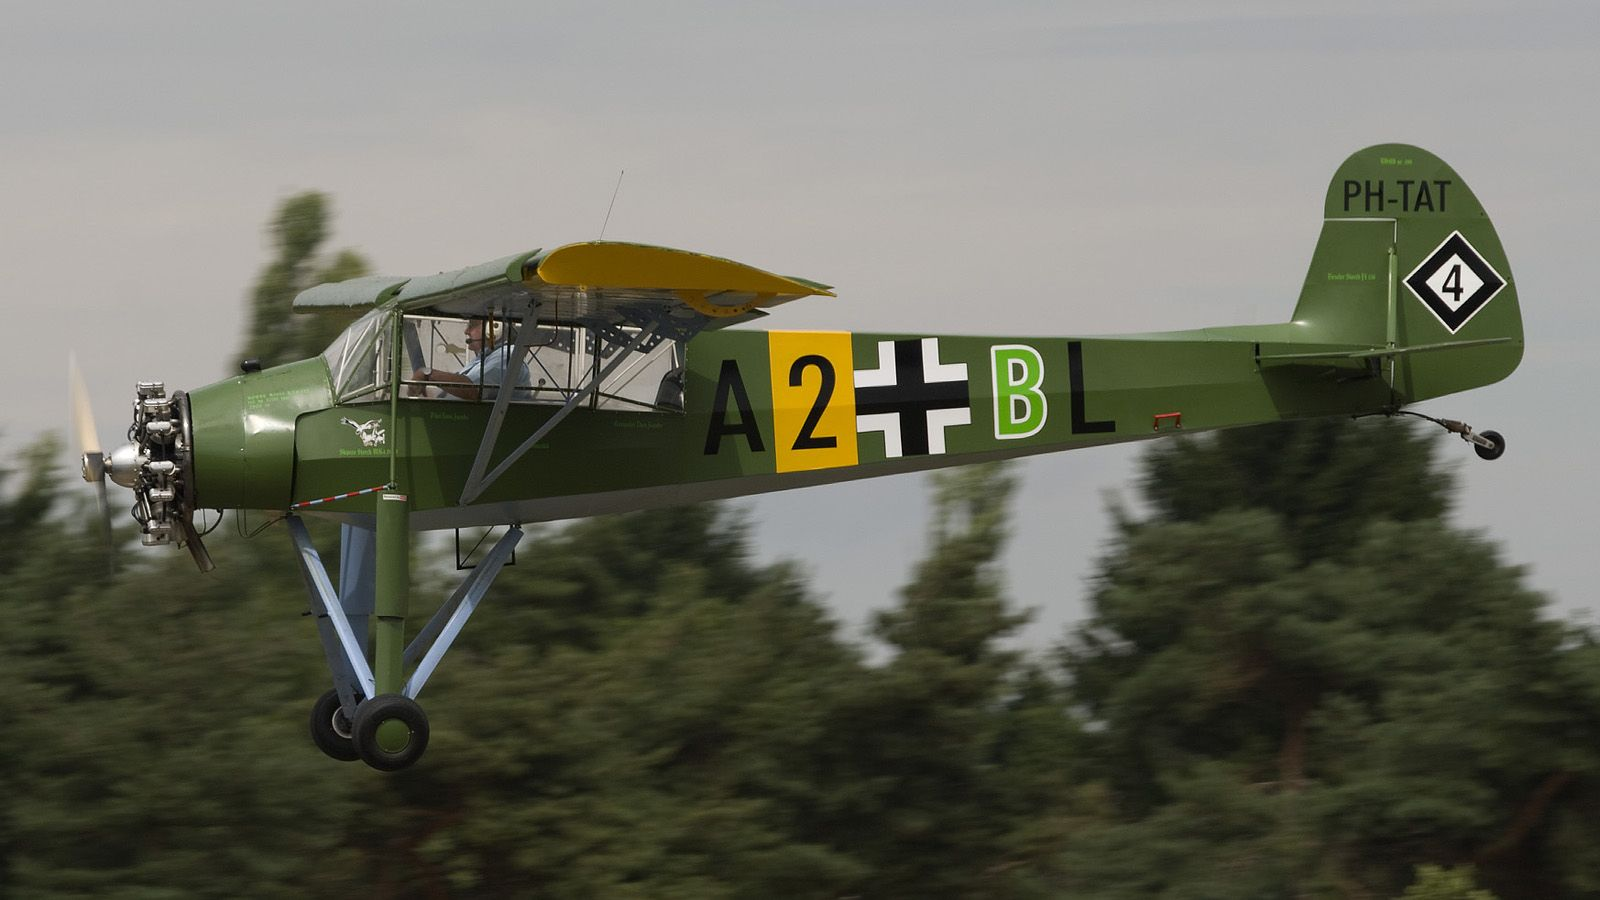 Not strictly a warbird to purists This Slepcev Storch Mk4 is